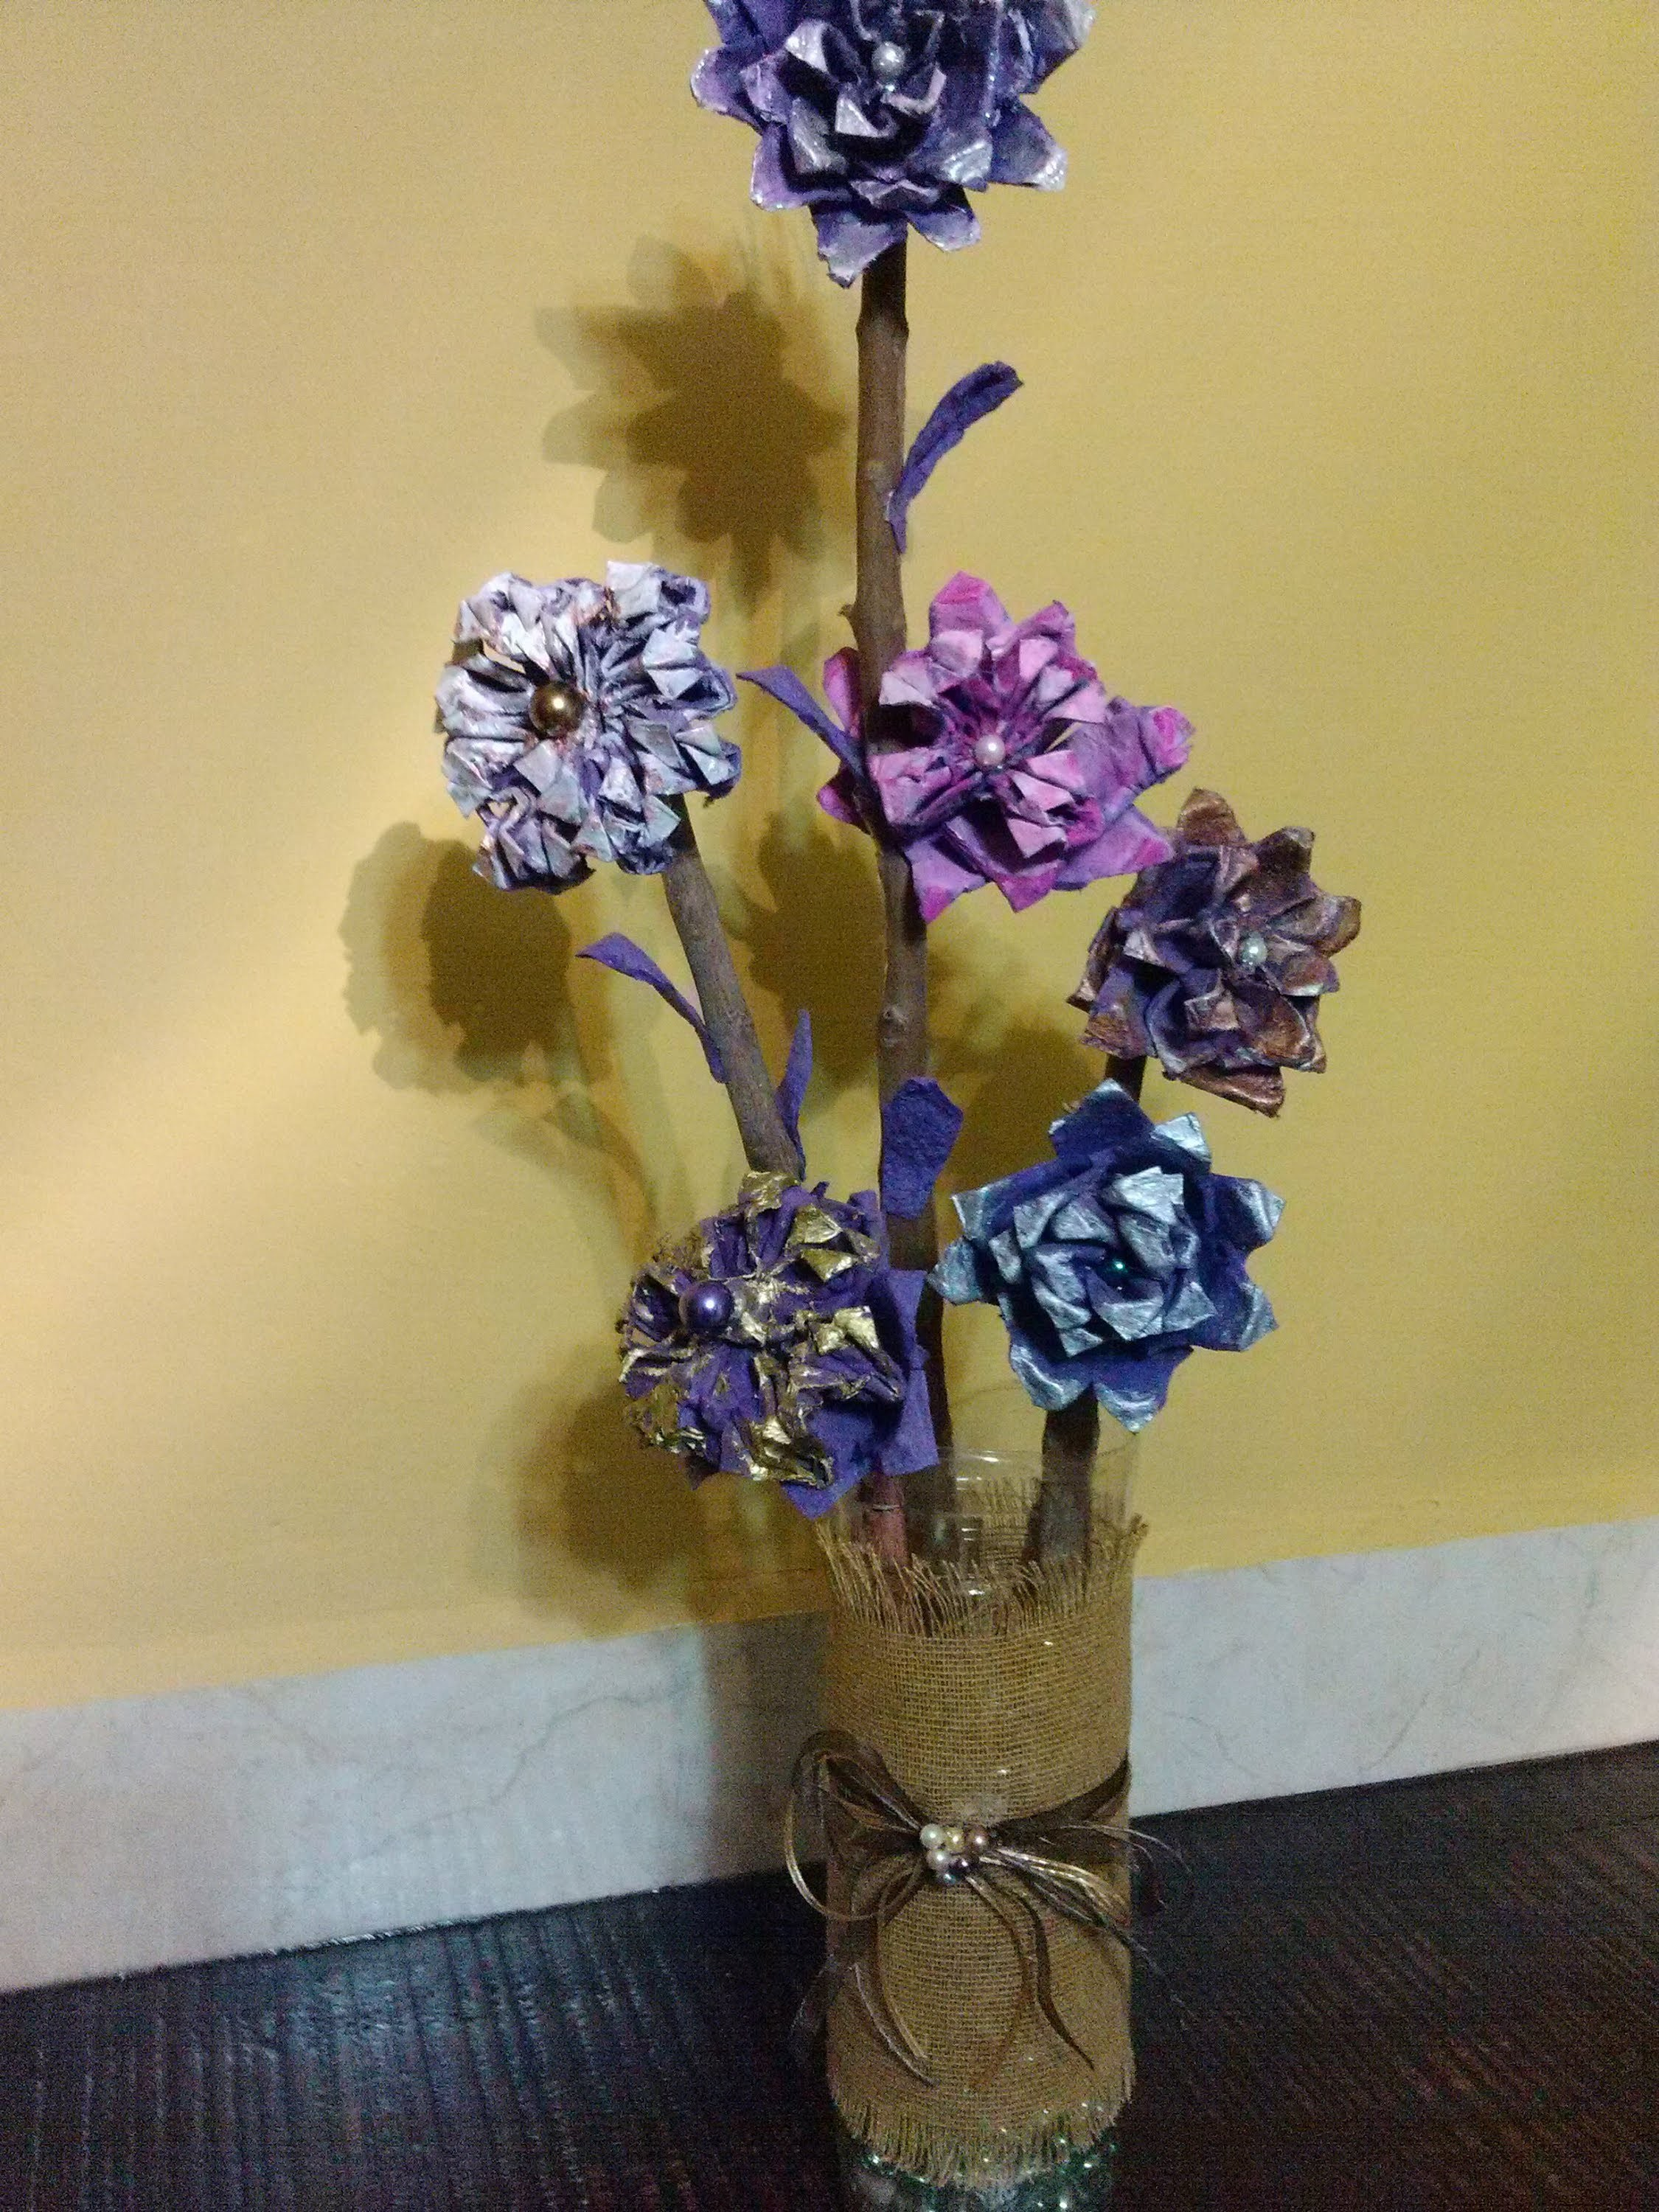 DIY Arreglo hecho con flores de cartón de huevo.Flower arrangement made with egg carton flowers